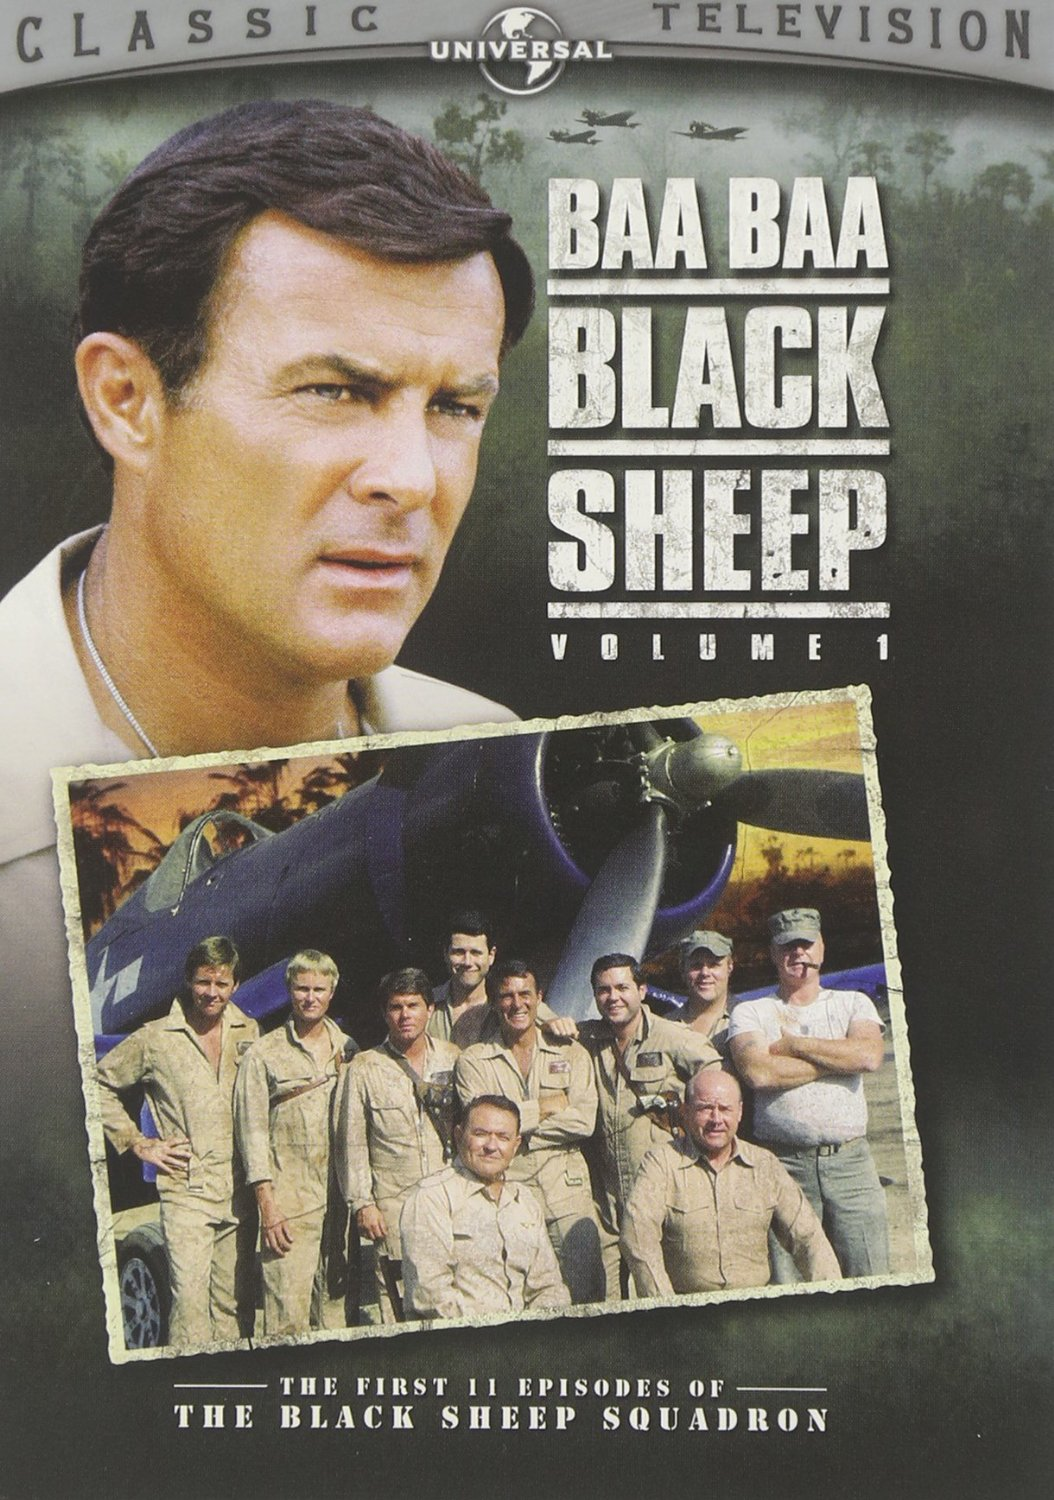 Baa Baa Black Sheep - Volume 1